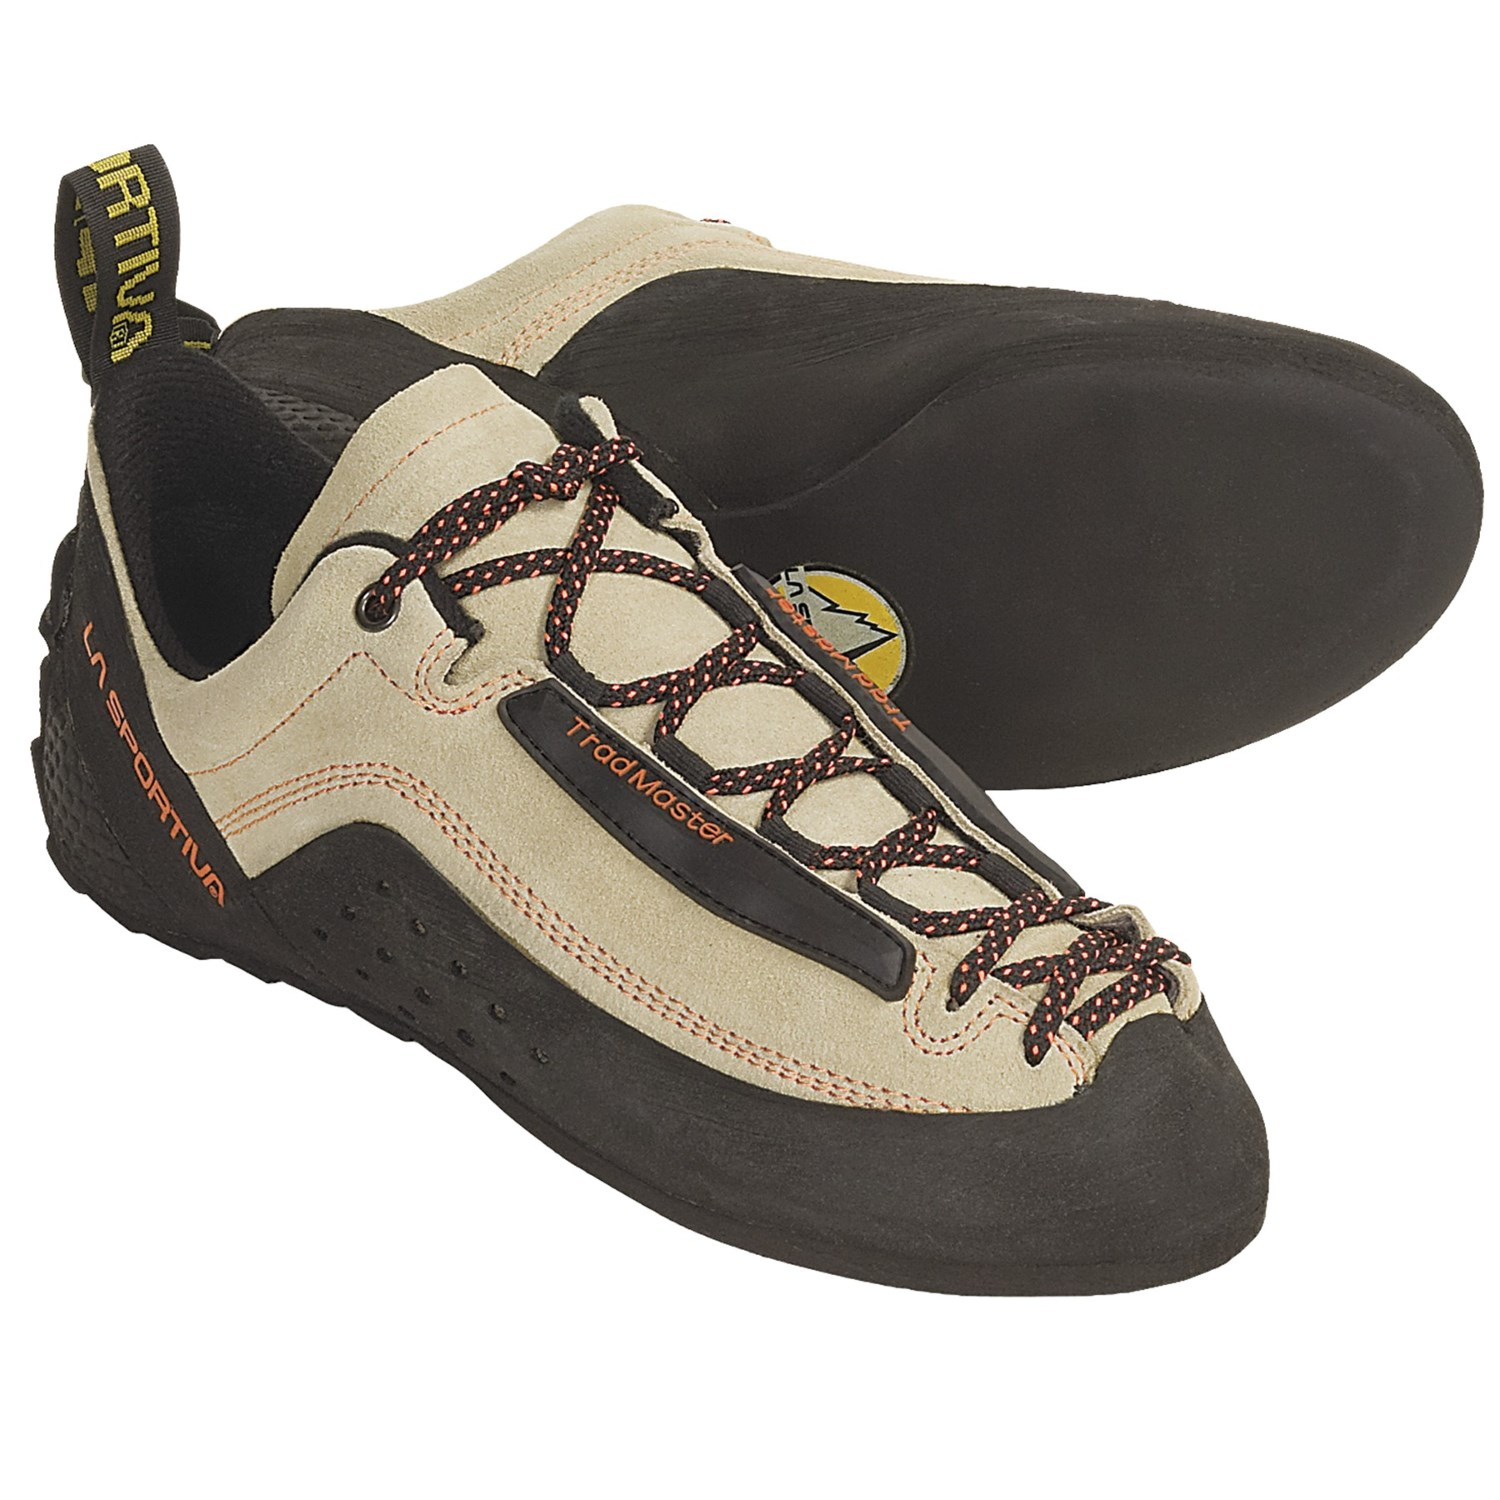 Five Ten Anasazi Low Volume Climbing Shoe - Women's | Backcountry.com